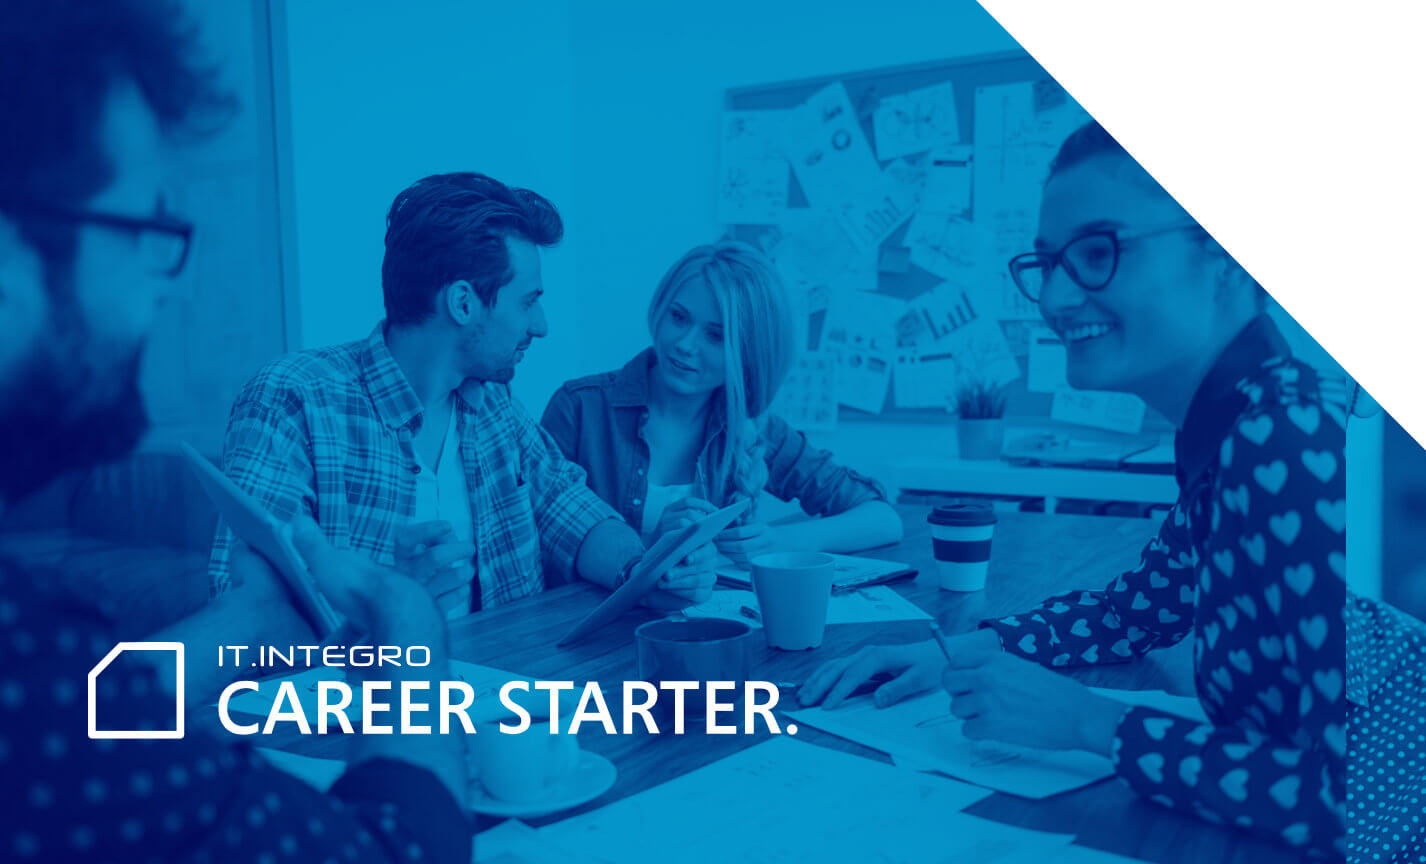 Staż w IT IT.integro Career Starter